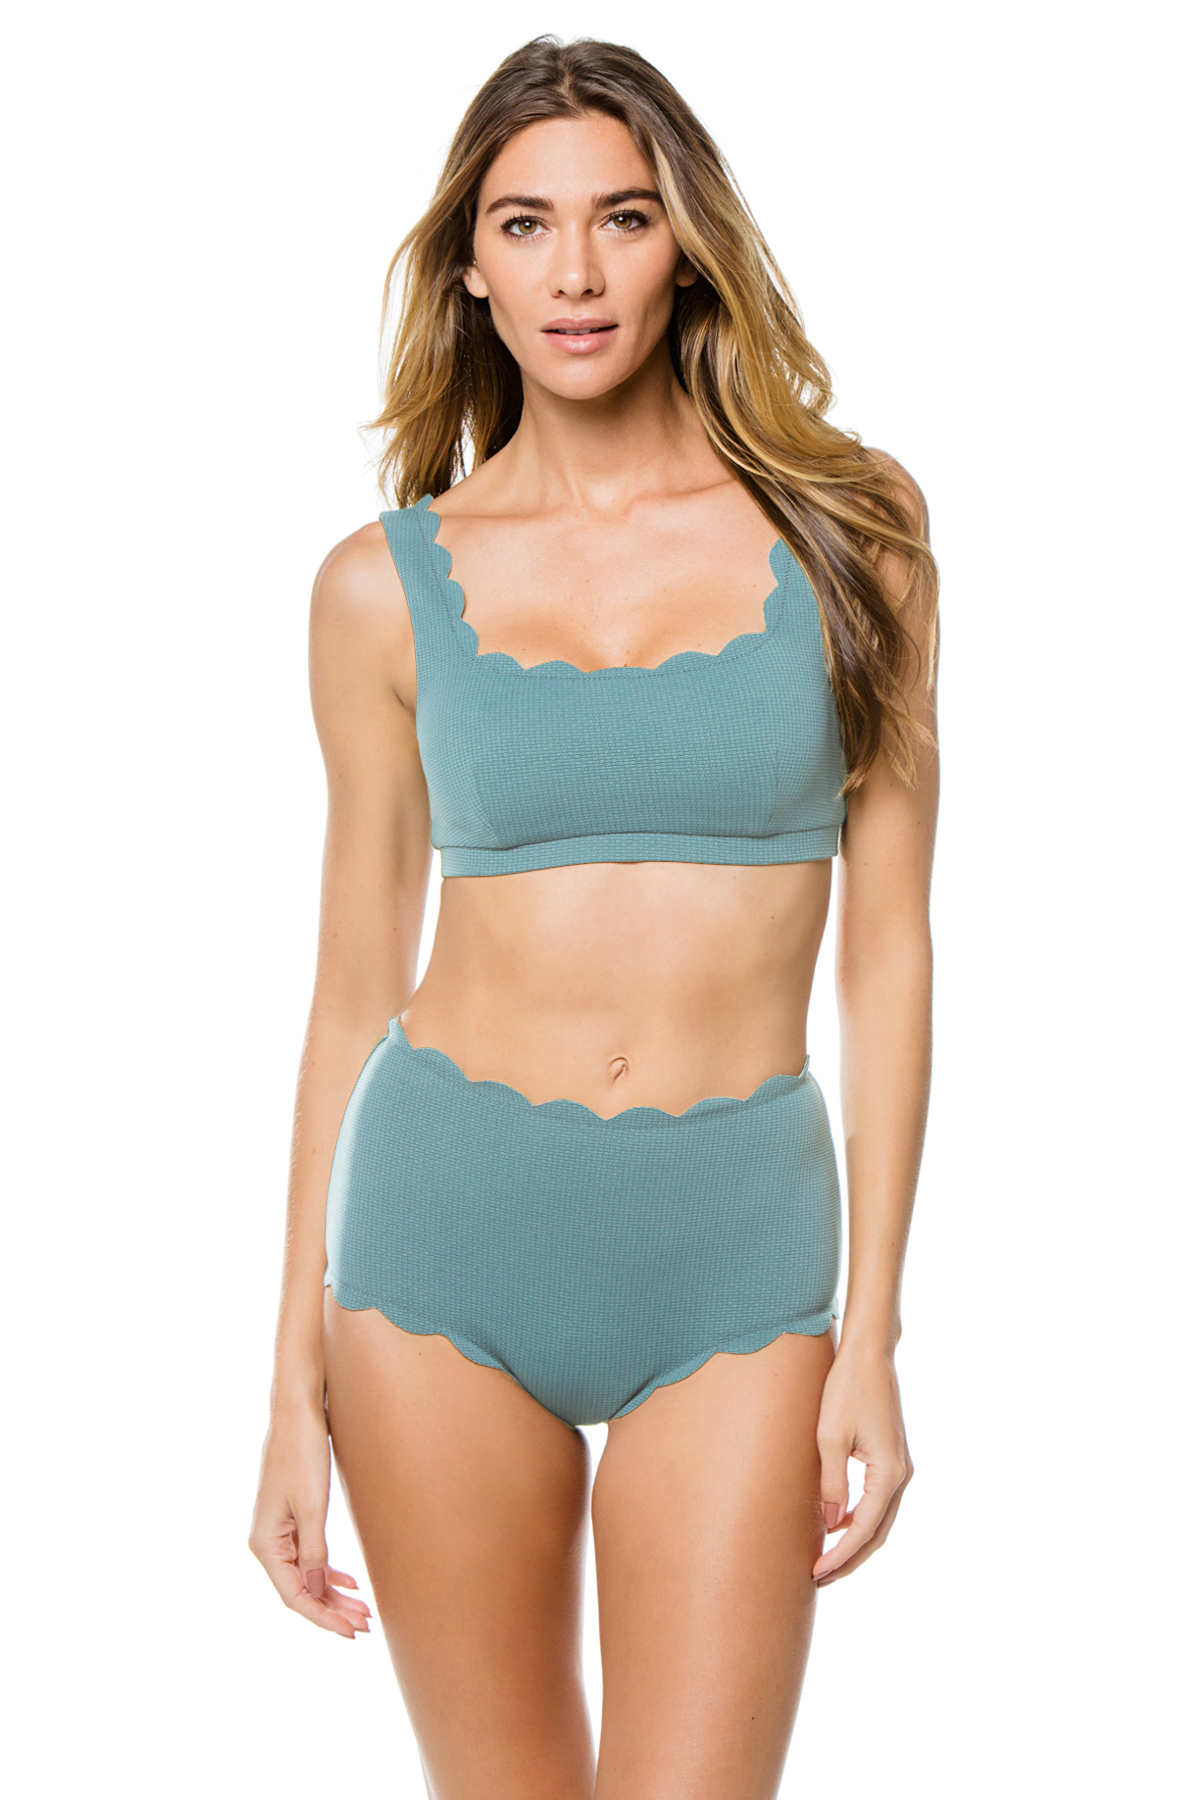 Palm Springs Scalloped Bralette Bikini Top - Smoke Blue 7